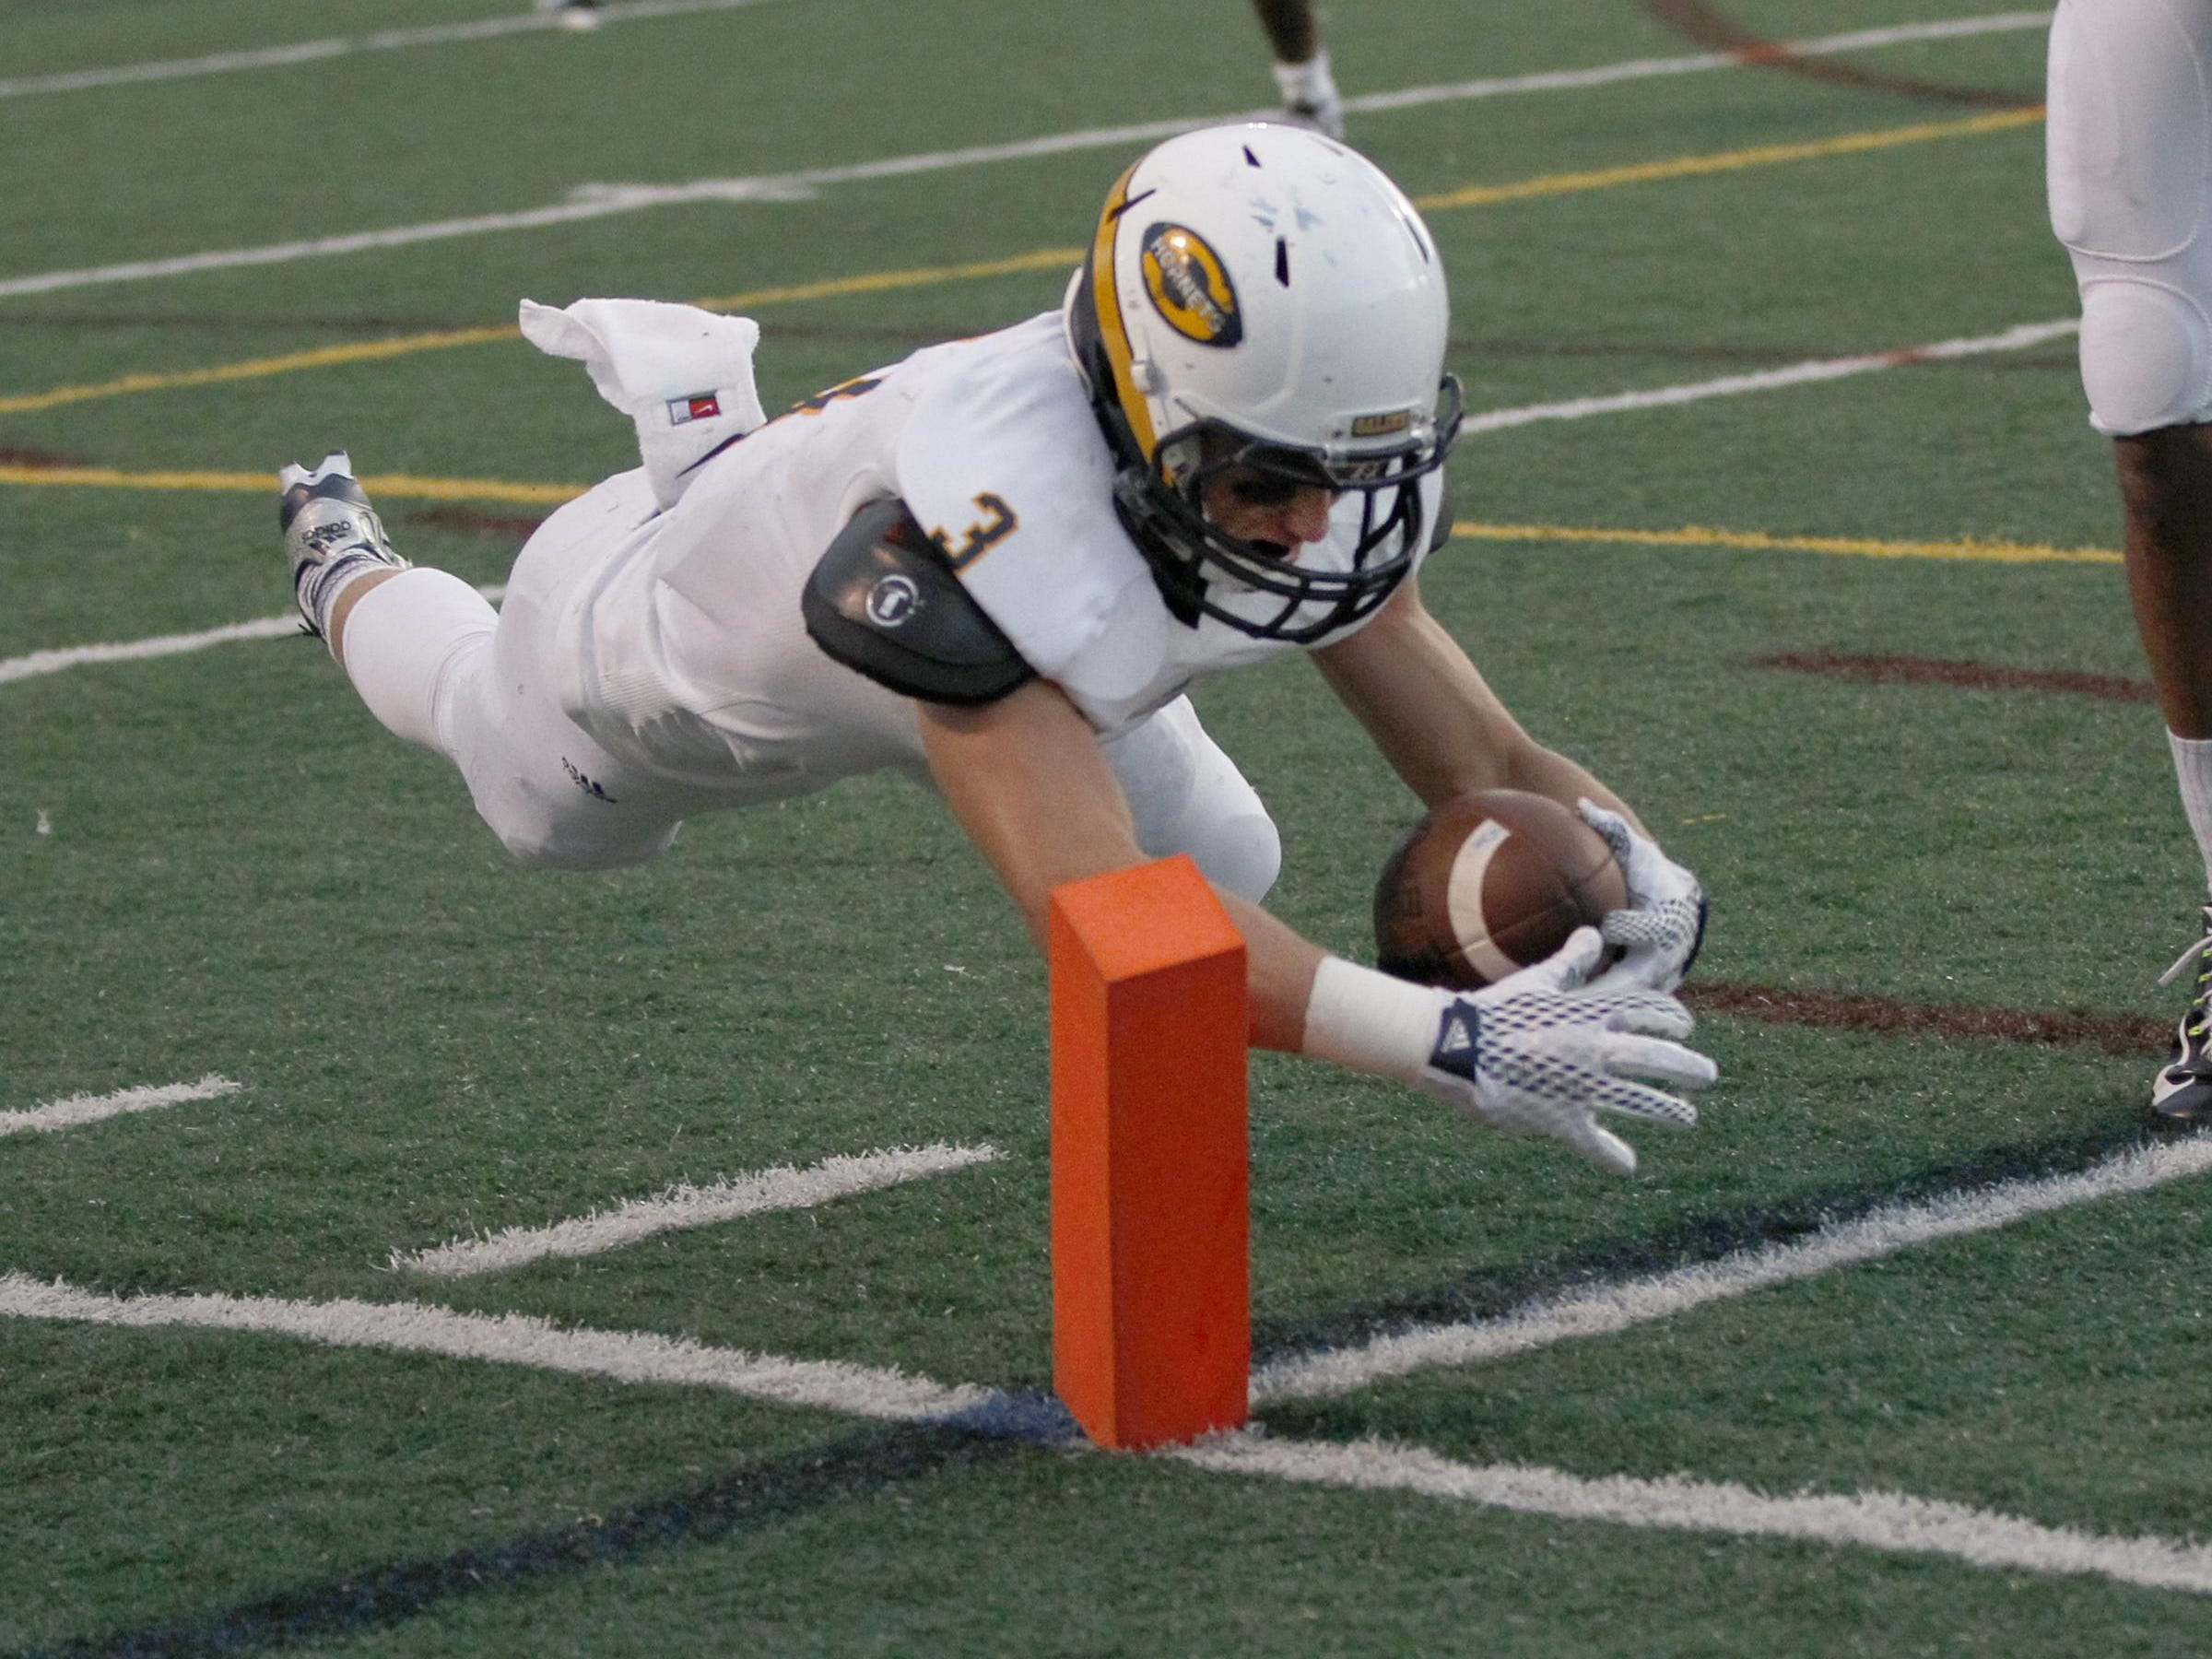 Saline Zach Schwartzenberger dives for the end zone coroner to score a touch down in the second quarter for a 10-0 lead over Ann Arbor Skyline high school on Friday, September 11, 2015, in Ann Arbor. Julian H. Gonzalez/Detroit Free Press